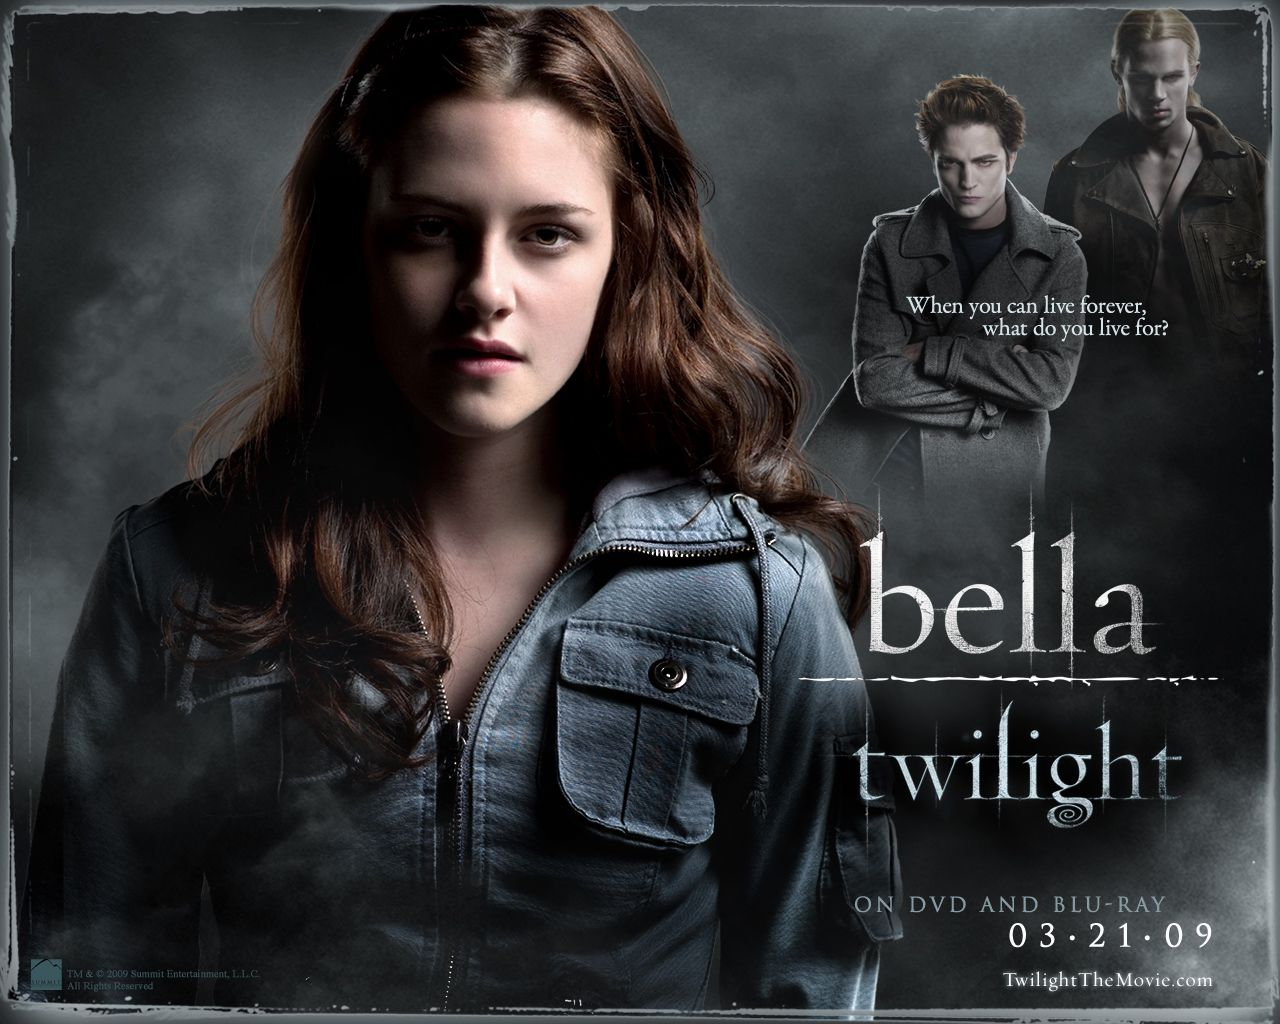 New Moon Twilight HD Desktop Wallpaper for K Ultra HD TV